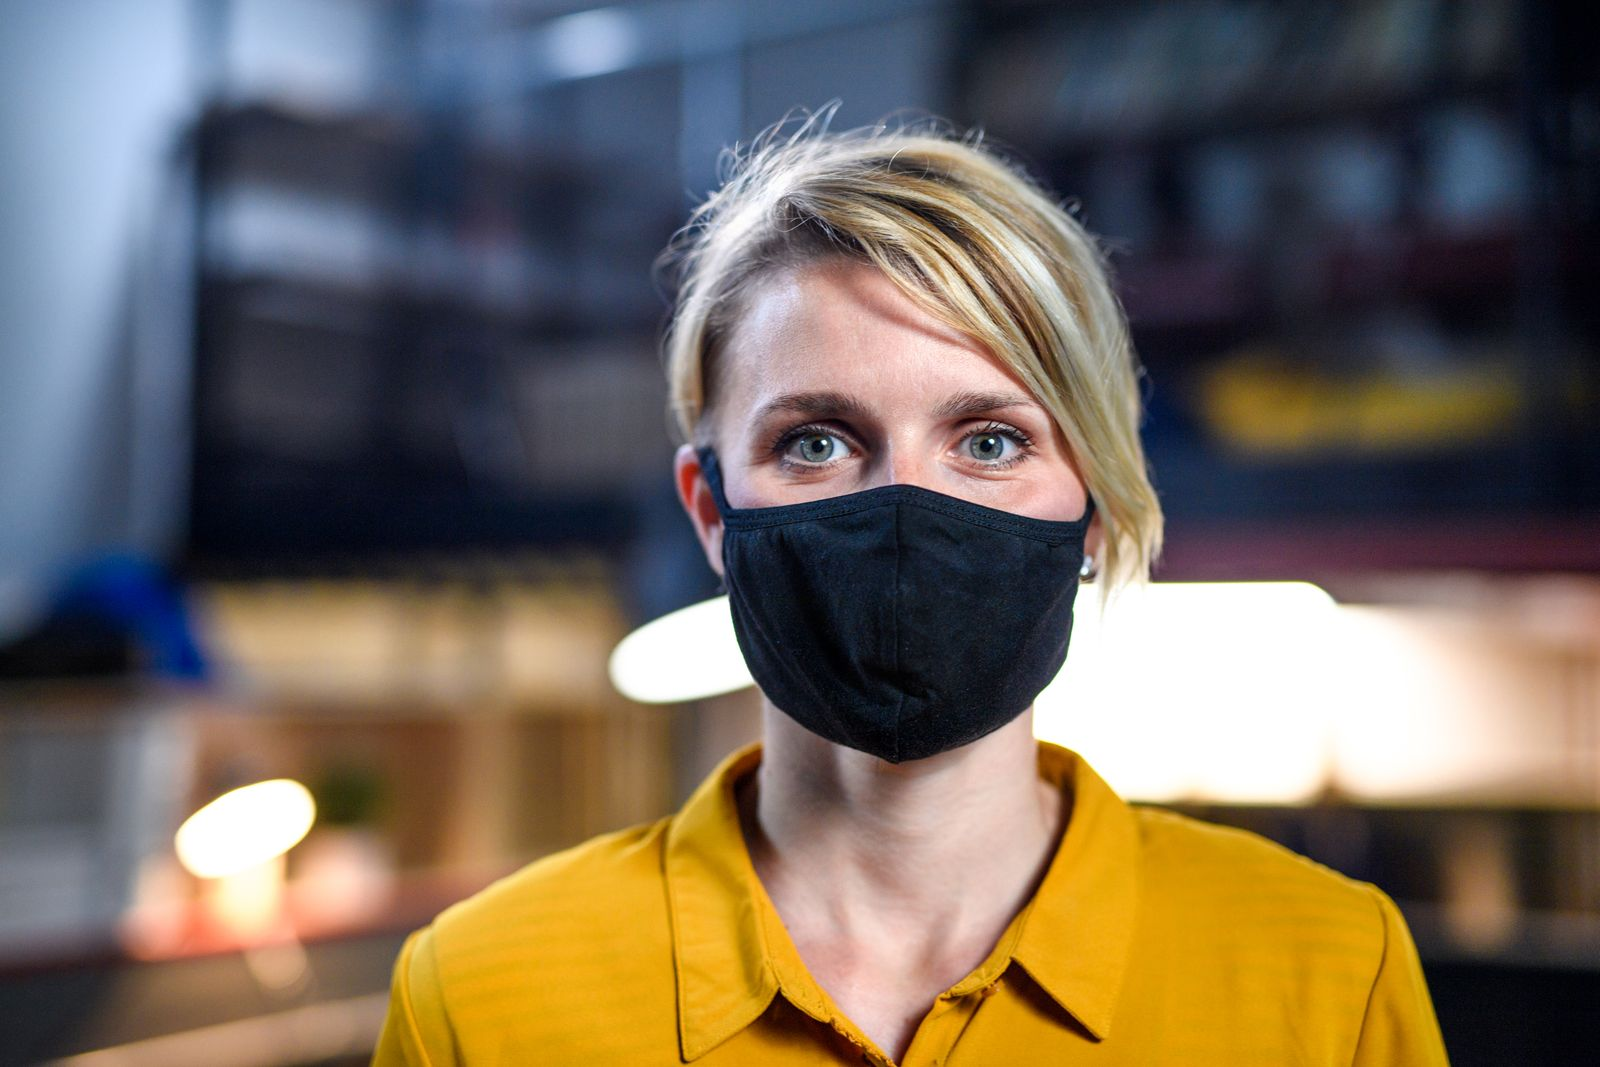 Portrait of woman with face mask standing indoors in office, looking at camera.